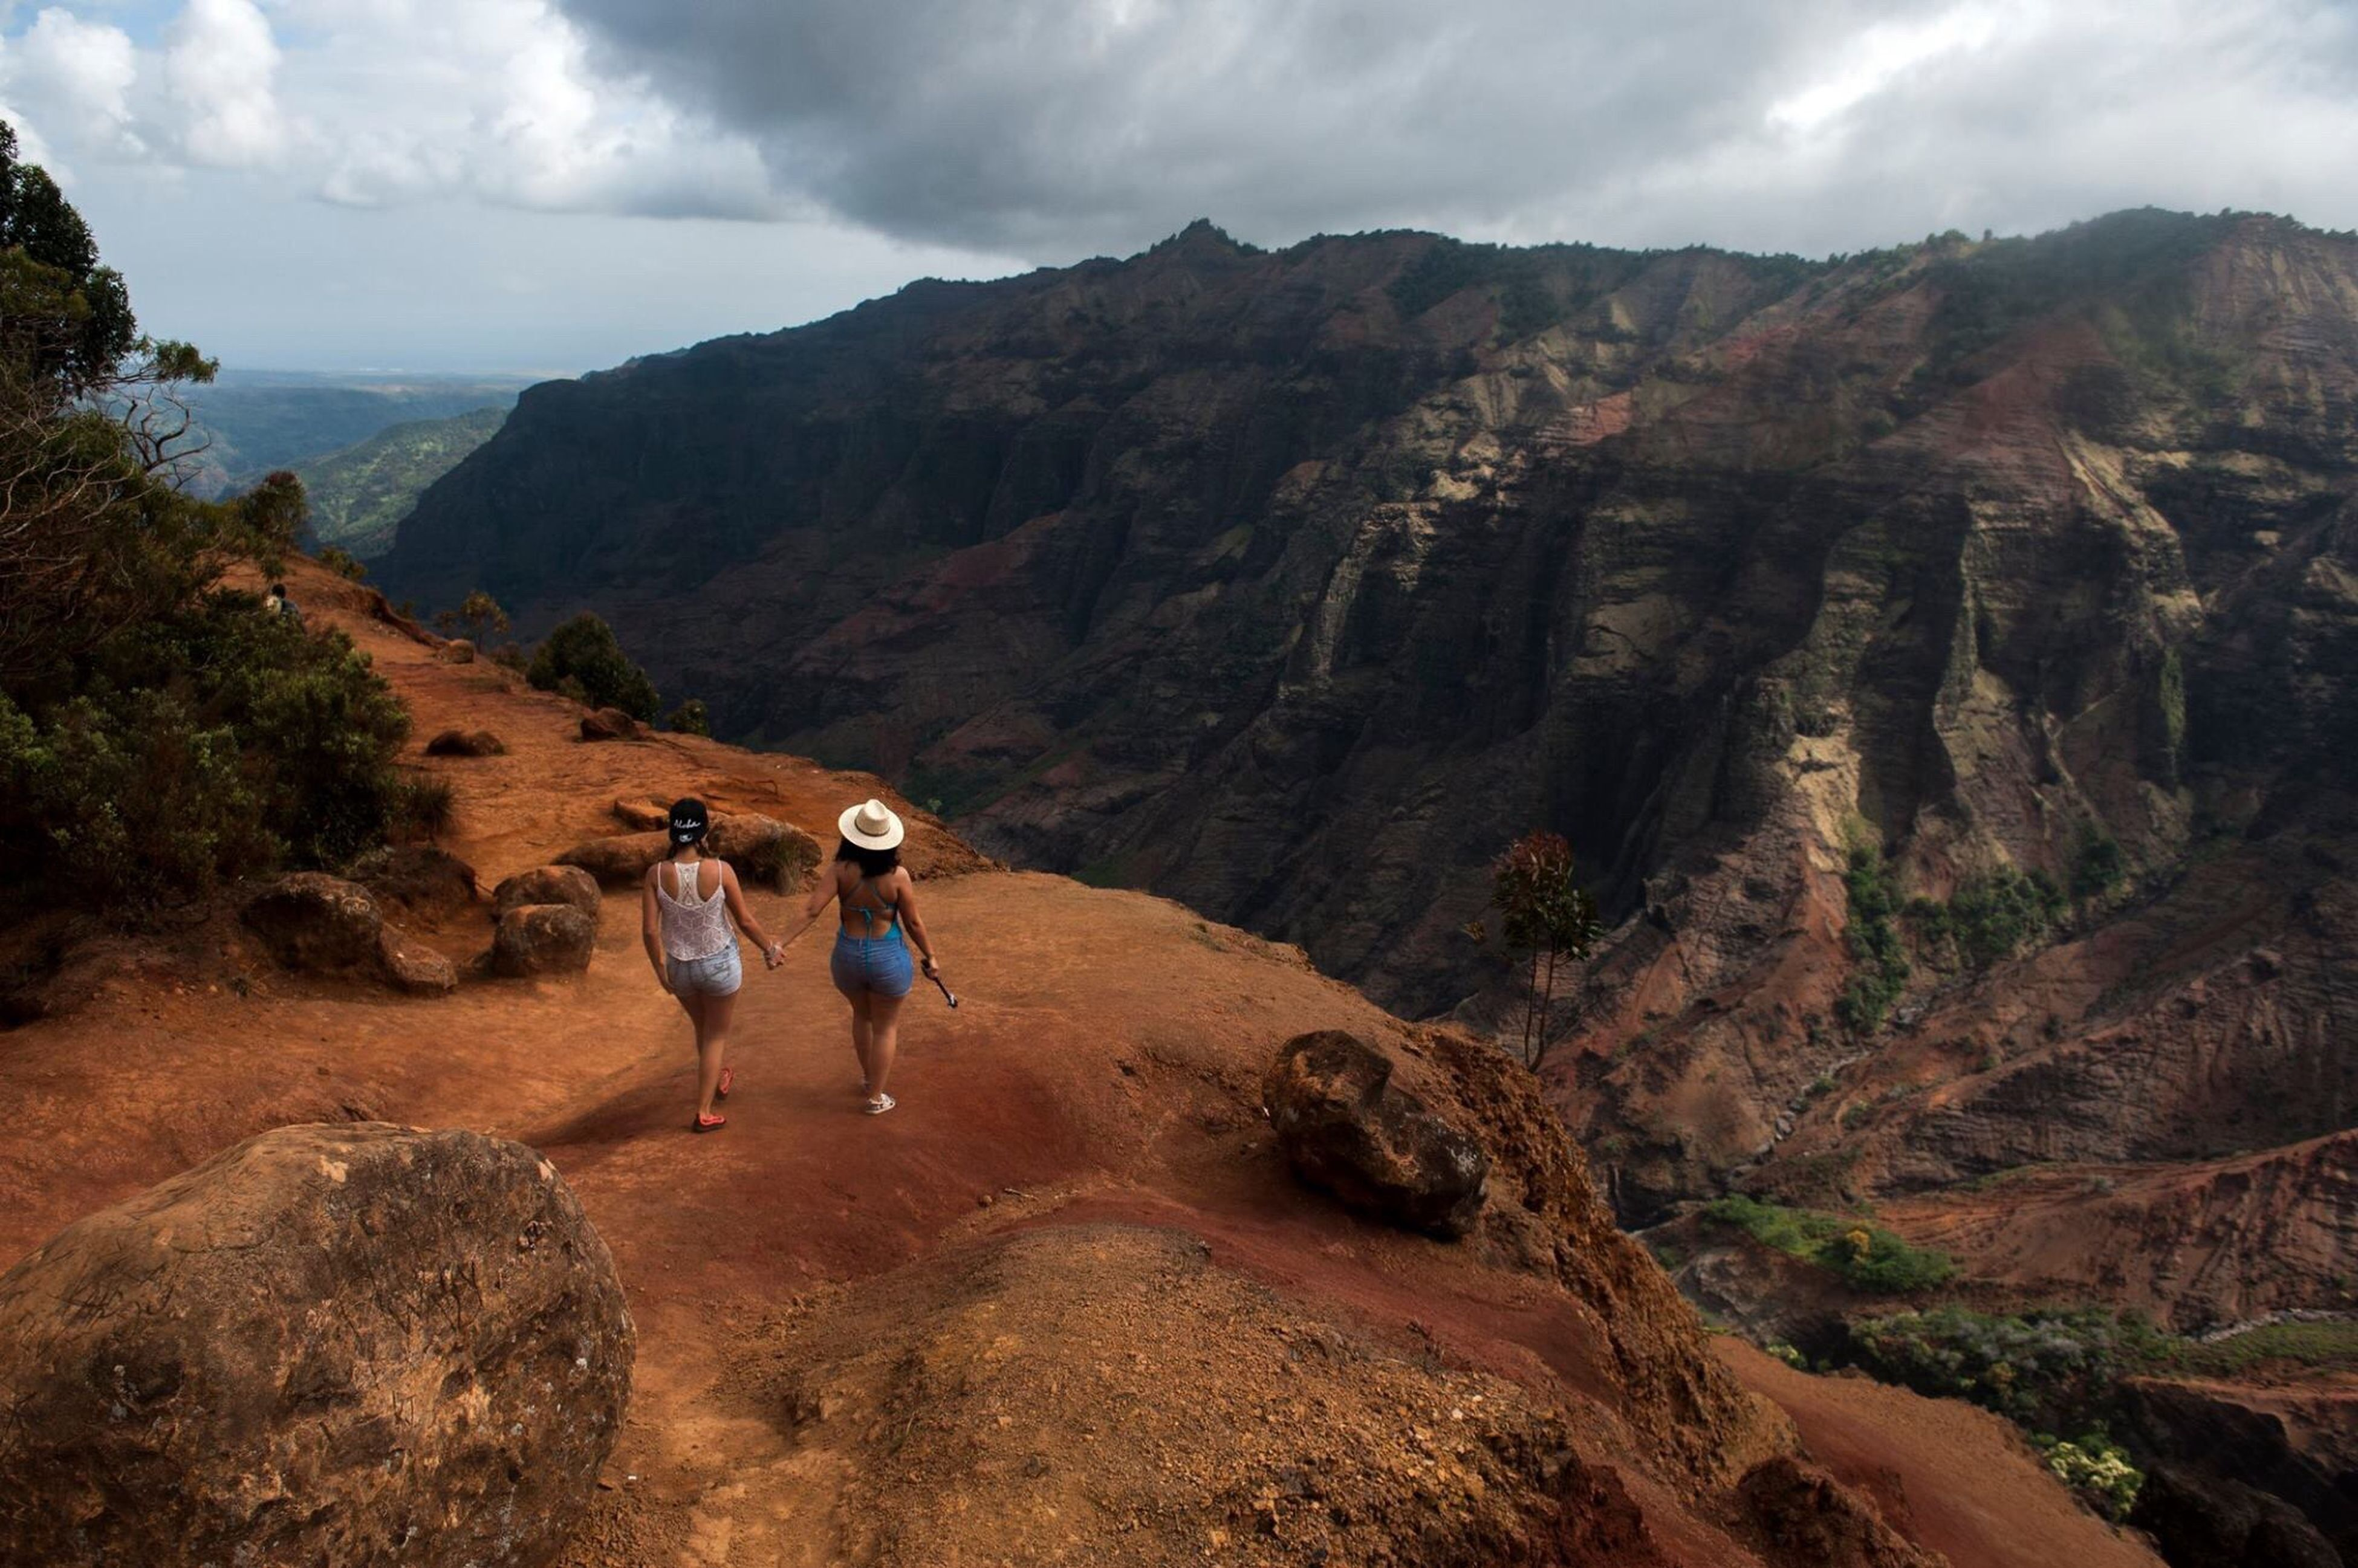 Adventure Club Lifeisajourney Take A Stroll Canyons Hawaii Life Hawaii Canyons Kauai The Path Is Part Of The Adventure